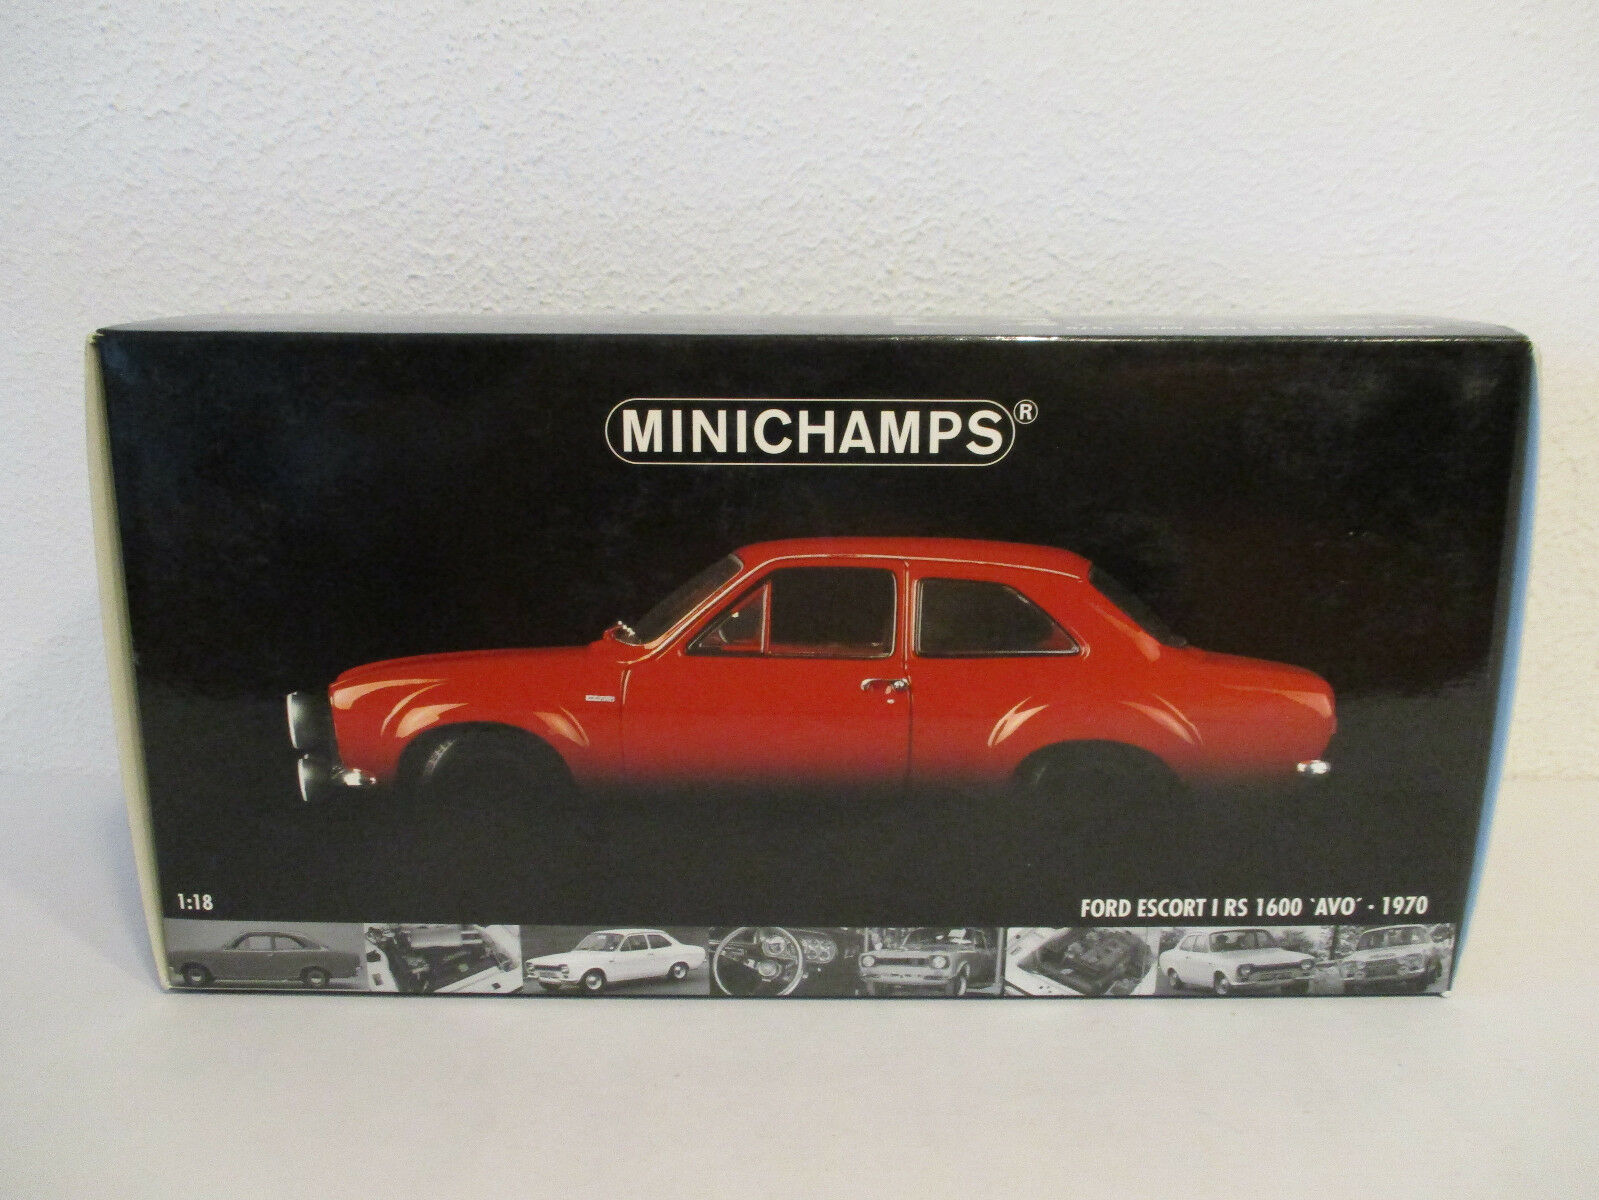 (Gol ) 1 18 Minichamps Ford Escort I RS 1600 1600 1600 AVO 1970 NEUF Emballage Scellé 27c562